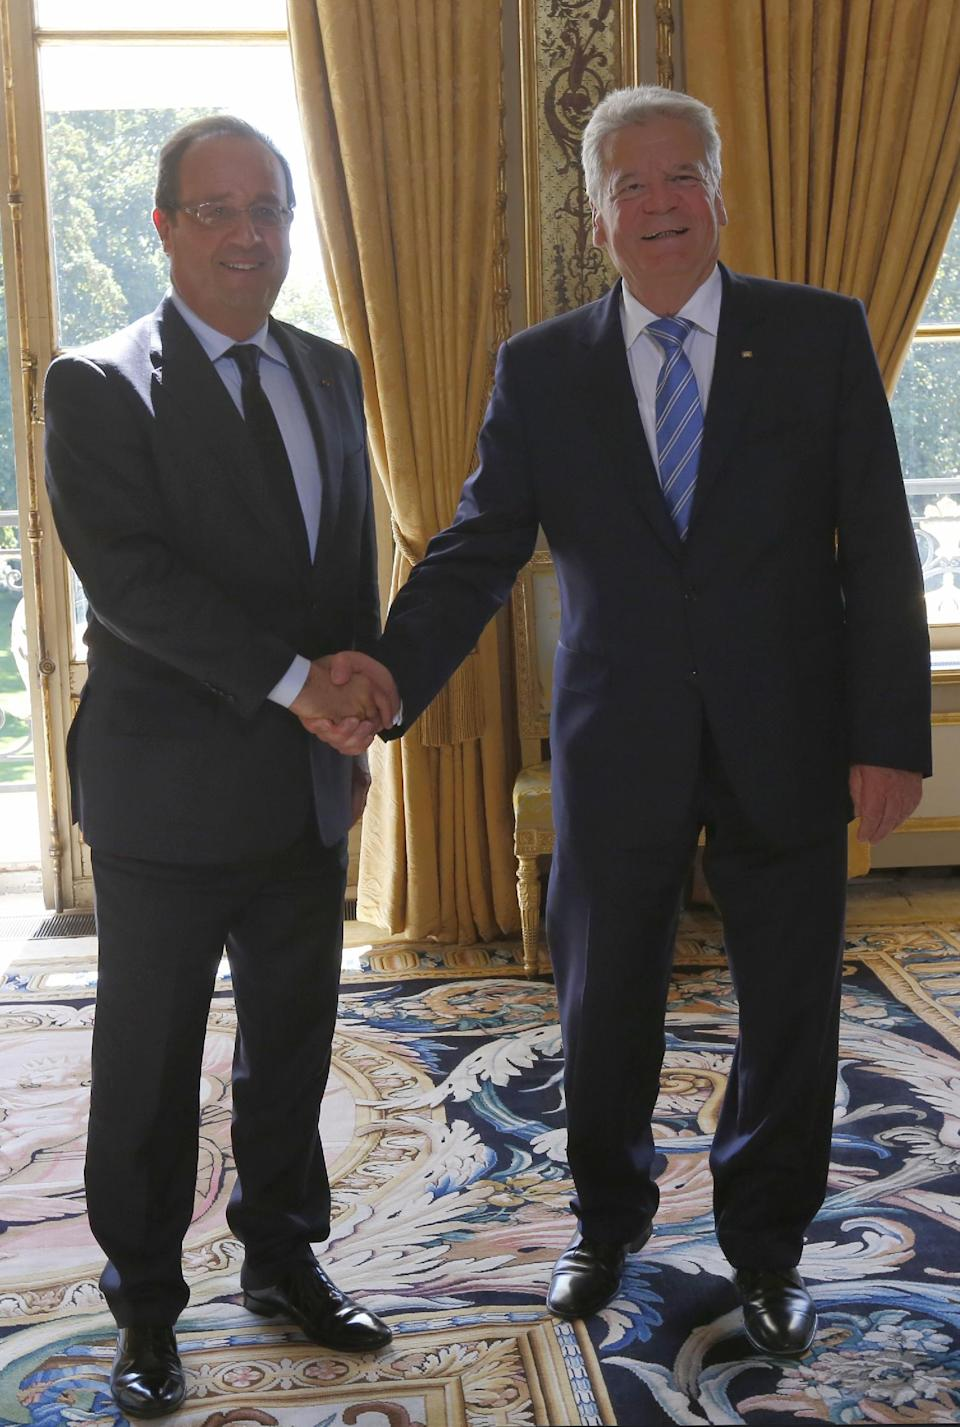 French President Francois Hollande left, and German President Joachim Gauckand meet at the Elysee Palace in Paris, Tuesday, Sept. 3, 2013. Gauckand is on a two-day state visit in France. (AP Photo/Jacques Brinon, Pool)